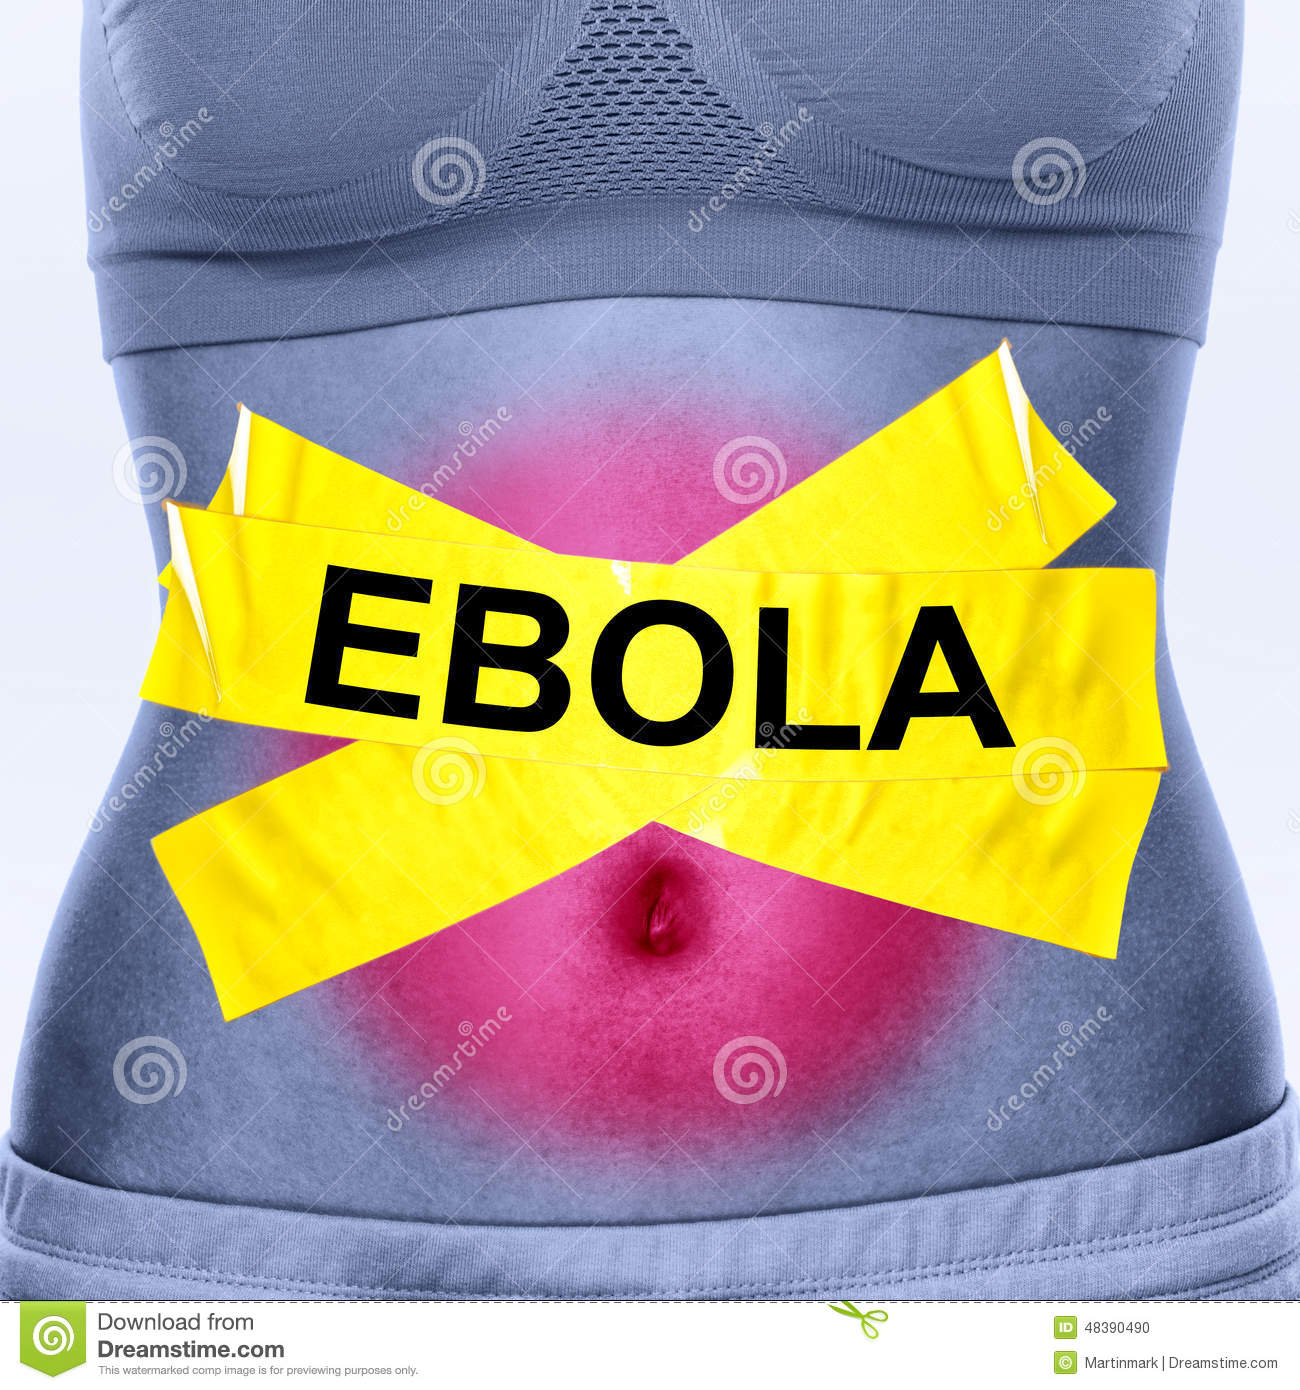 an analysis of the nausea illness and the symptoms of the ebola virus spreading Influenza and flu-like illness the illness caused by the influenza virus tends to be other serious illnesses can have similar symptoms to flu (influenza.